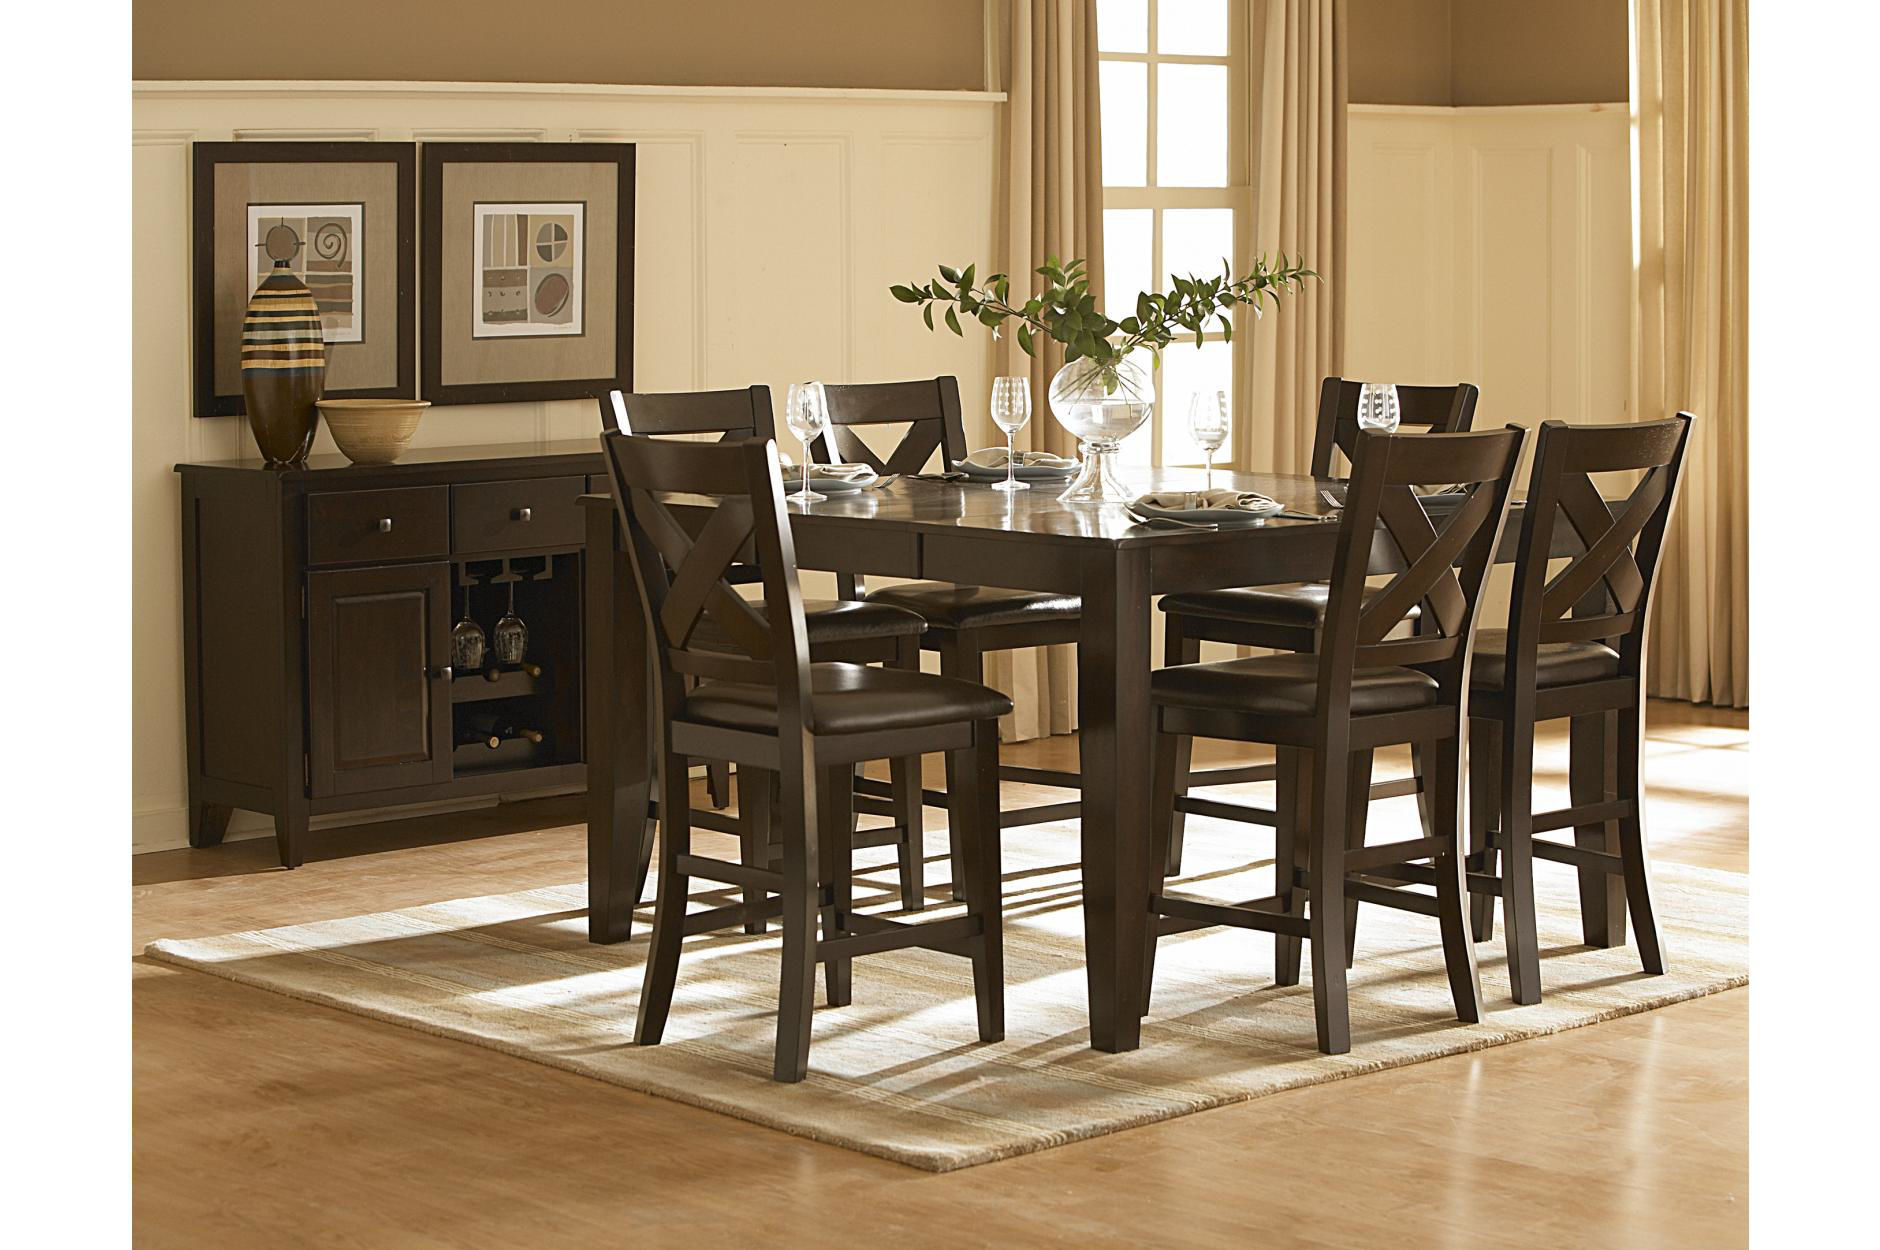 Catalina Counter Height Dining Set 1372 Only 1 399 00 Houston Furniture Store Where Low Prices Live